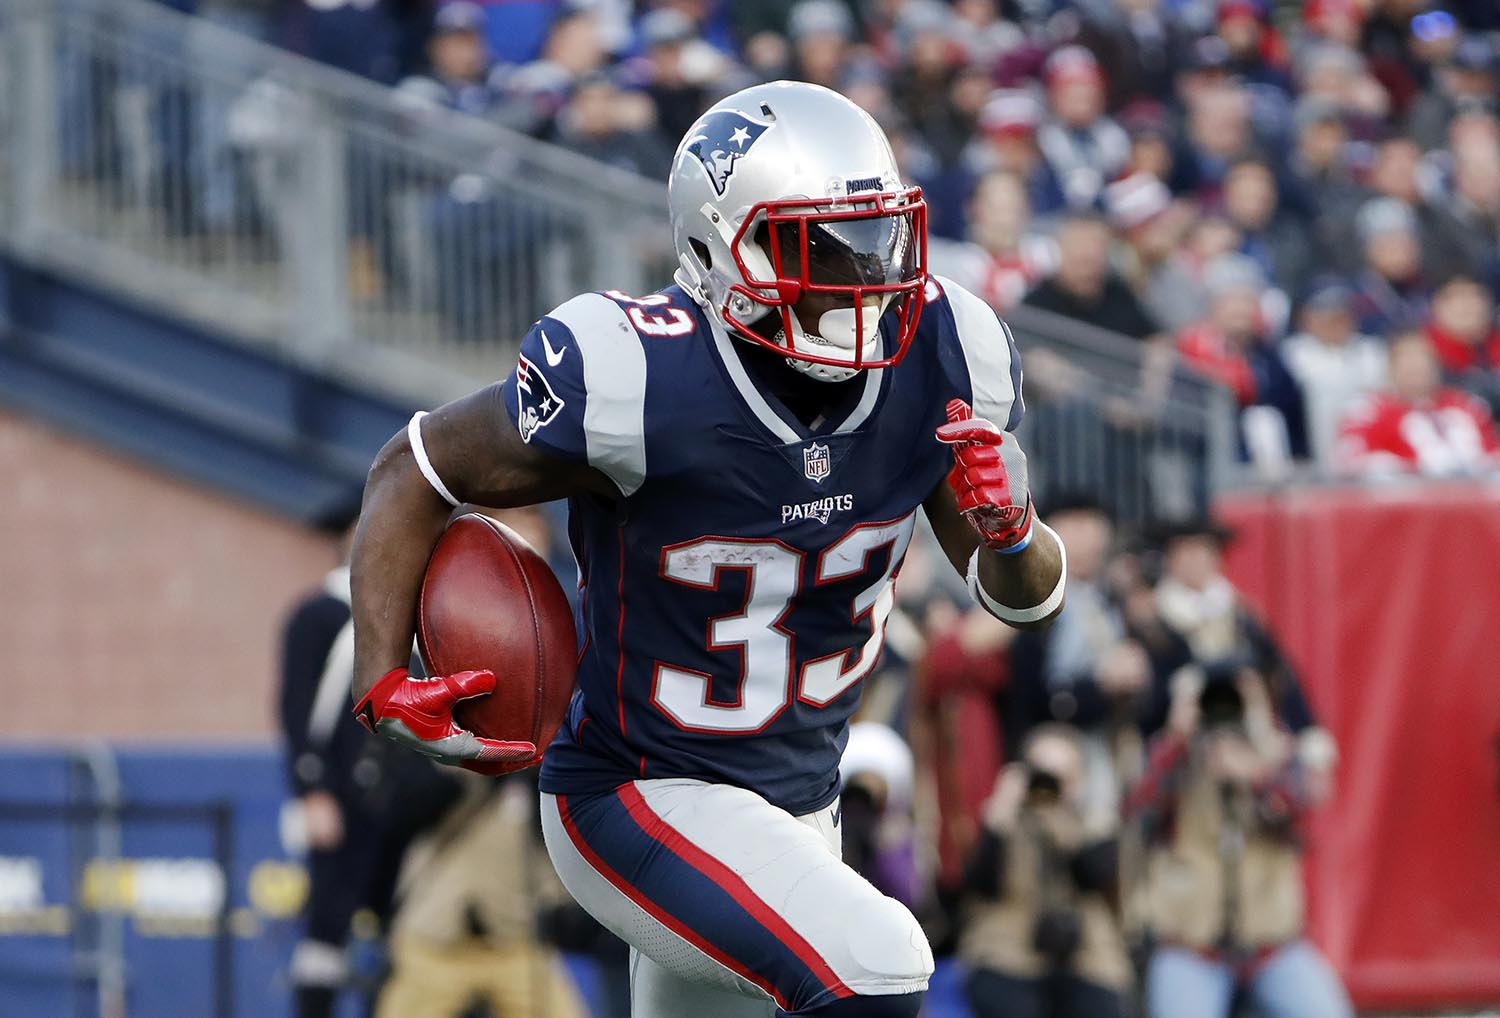 """<div class=""""meta image-caption""""><div class=""""origin-logo origin-image ap""""><span>AP</span></div><span class=""""caption-text"""">New England Patriots' running back Dion Lewis is a native of Albany, NY. (AP Photo/Winslow Townson)</span></div>"""